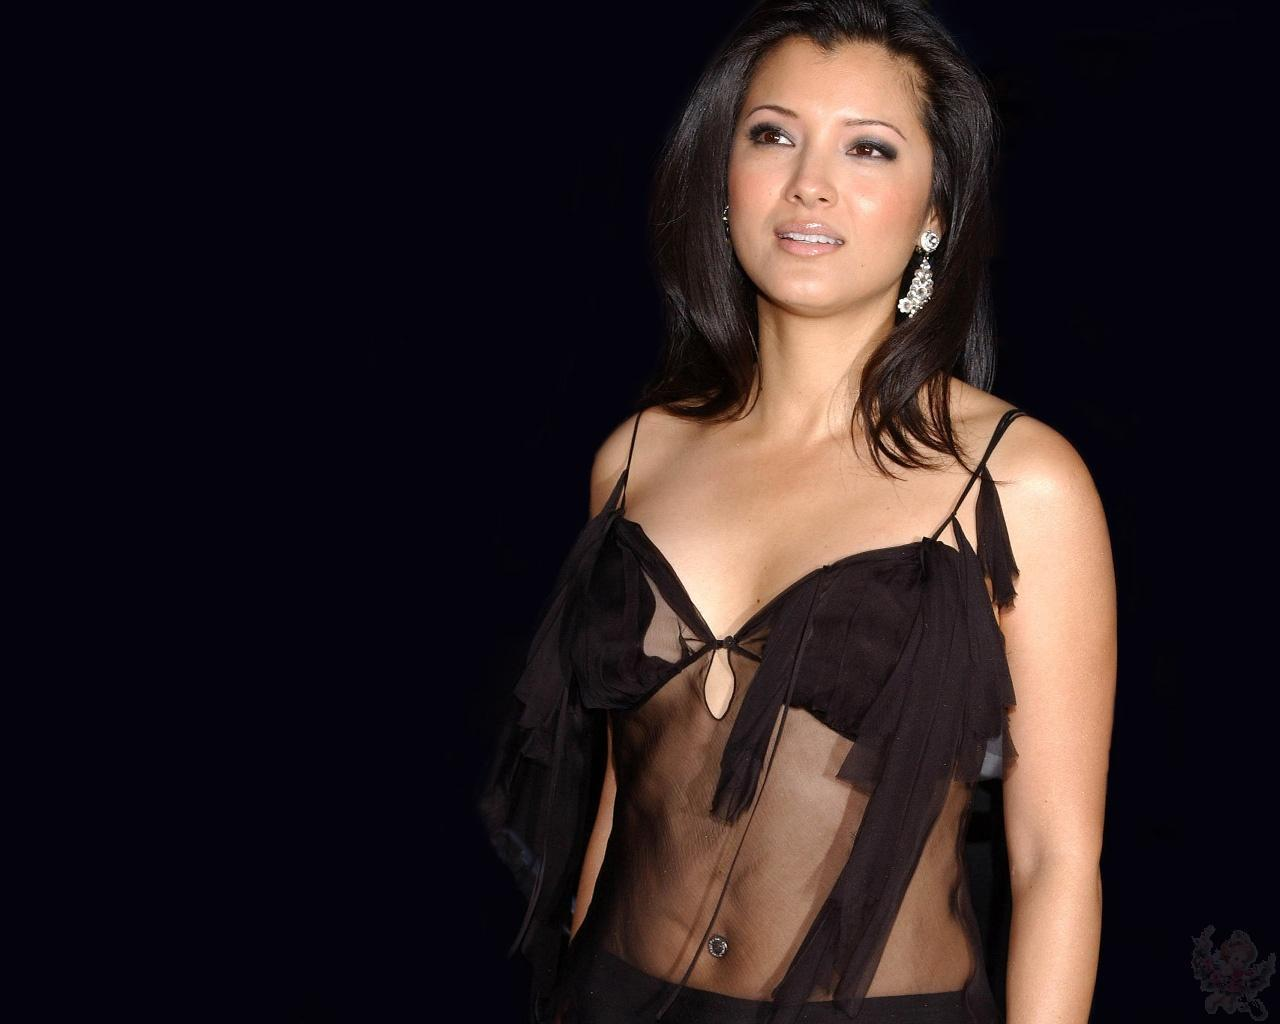 Kelly hu sexy Wallpaper 7 With 1280 x 1024 Resolution ( 79kB )